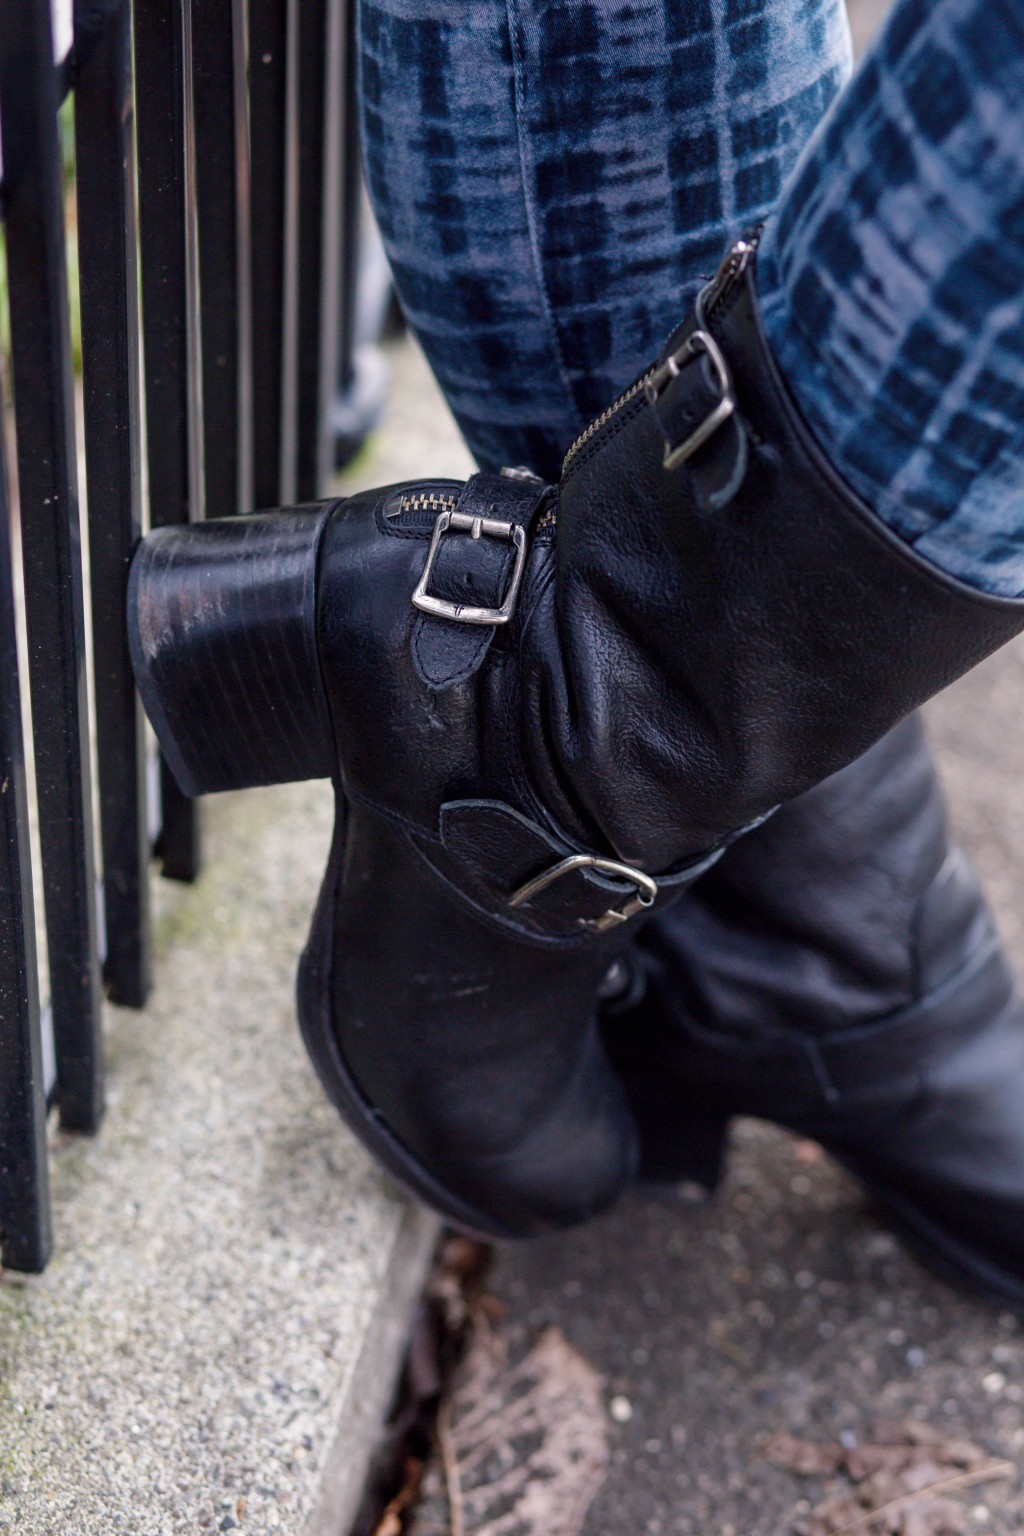 16 - edgy leather boots